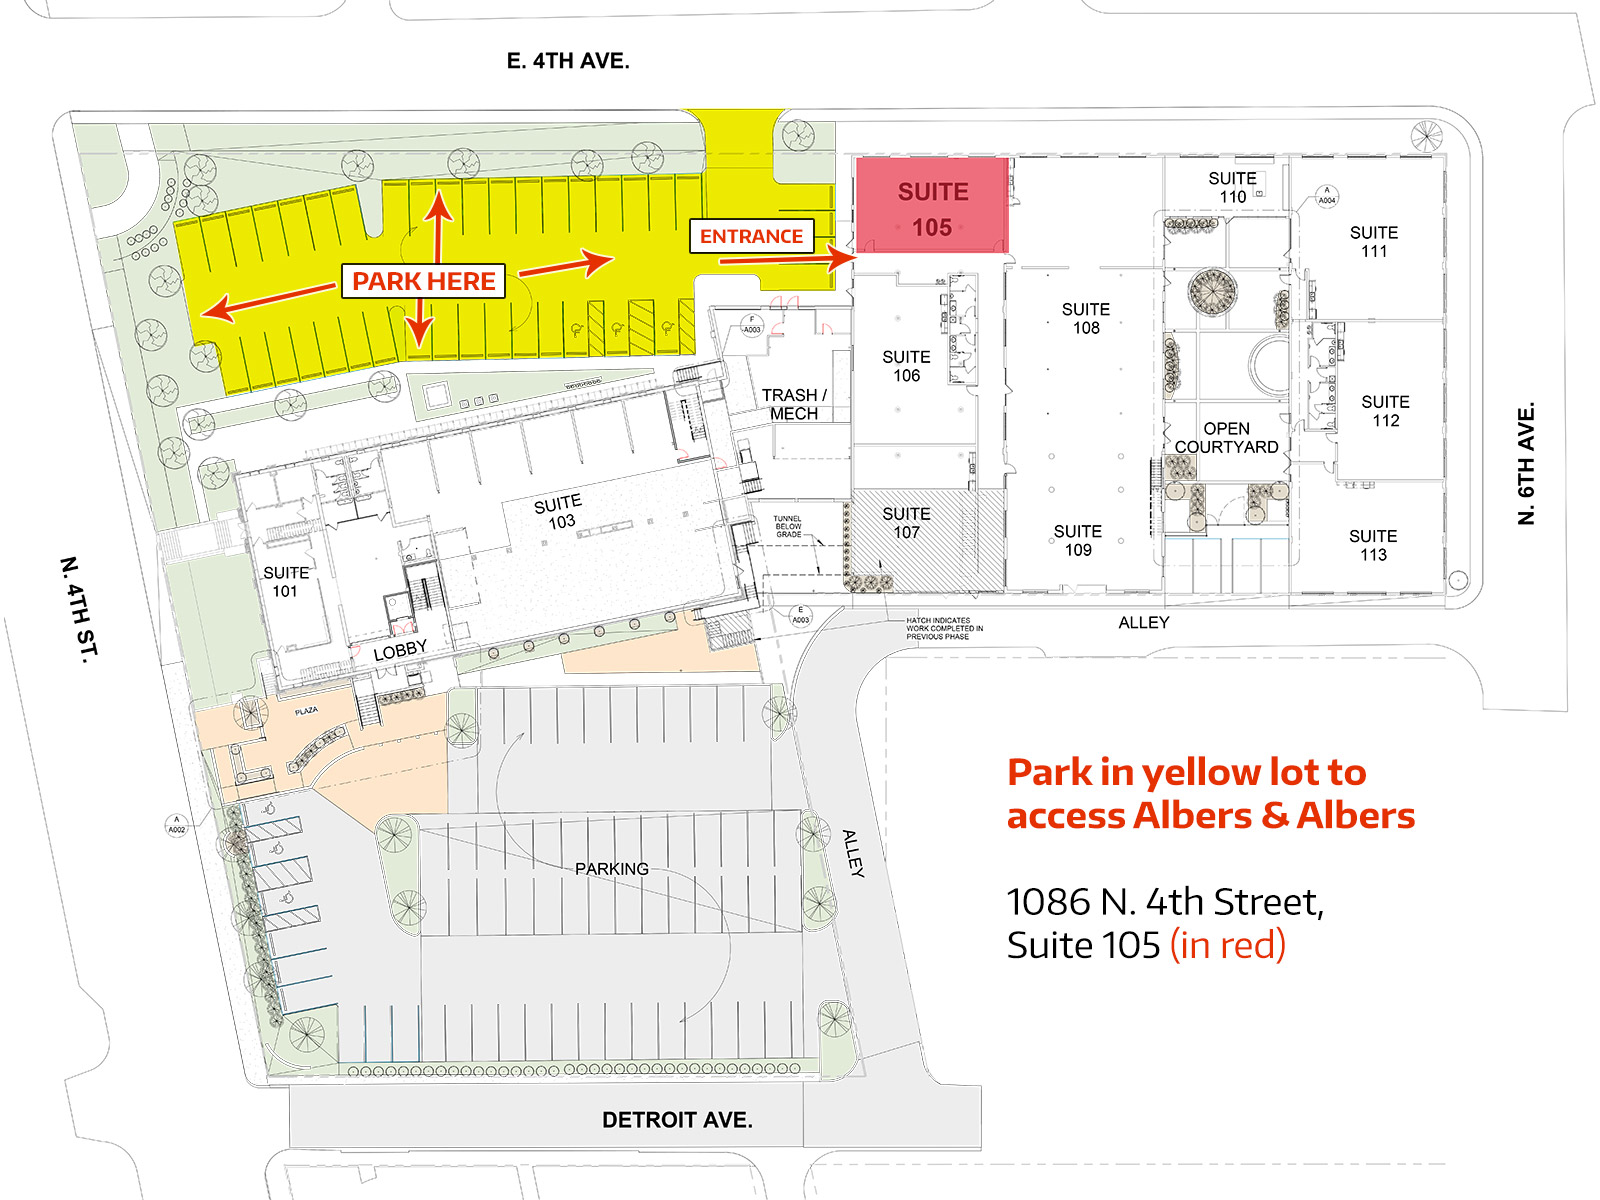 Albers & Albers Location and Parking Map